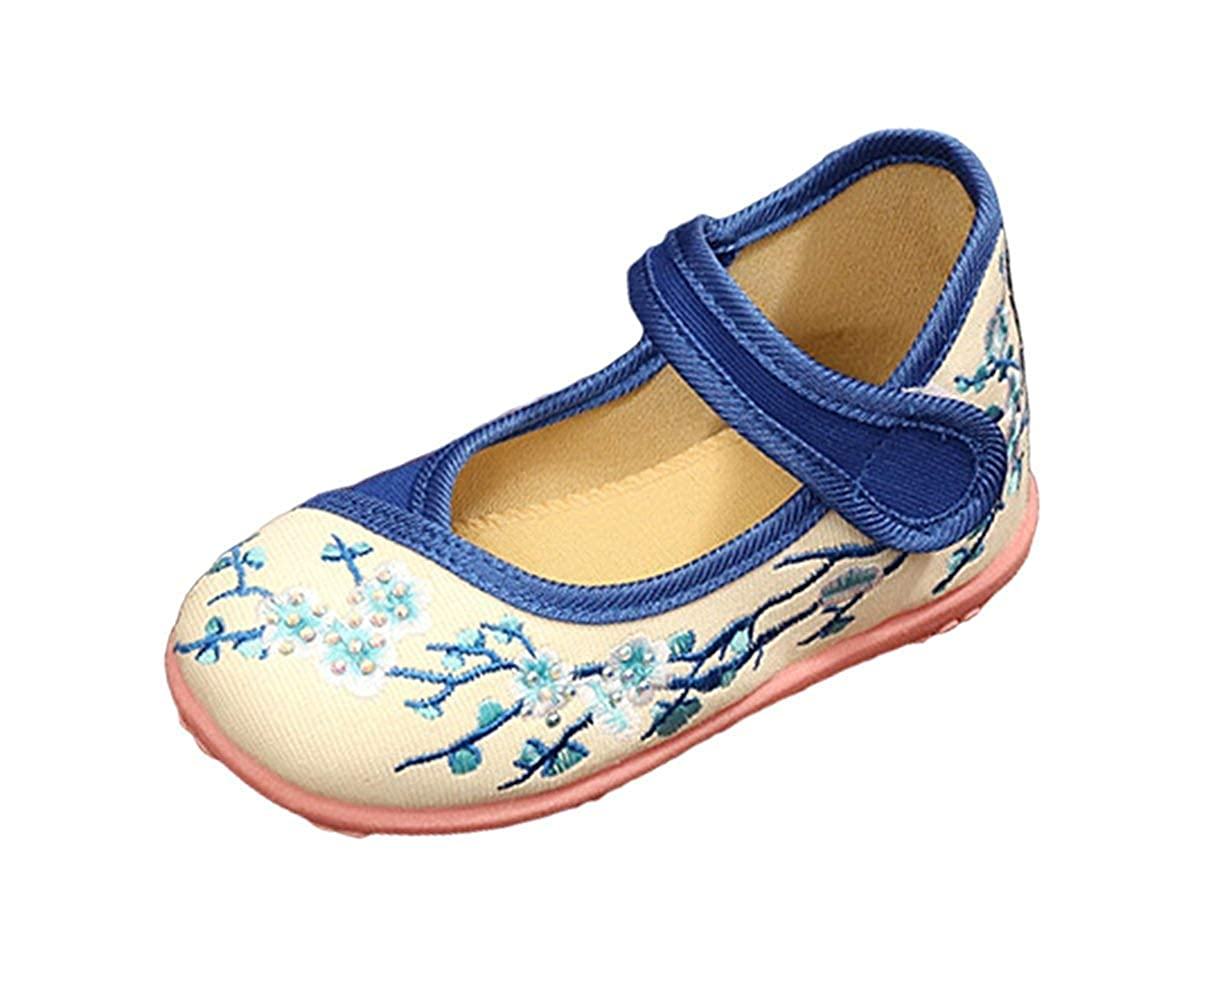 Girls Plum Blossom Embroidery Soft Sole Mary Jane Dancing Shoes